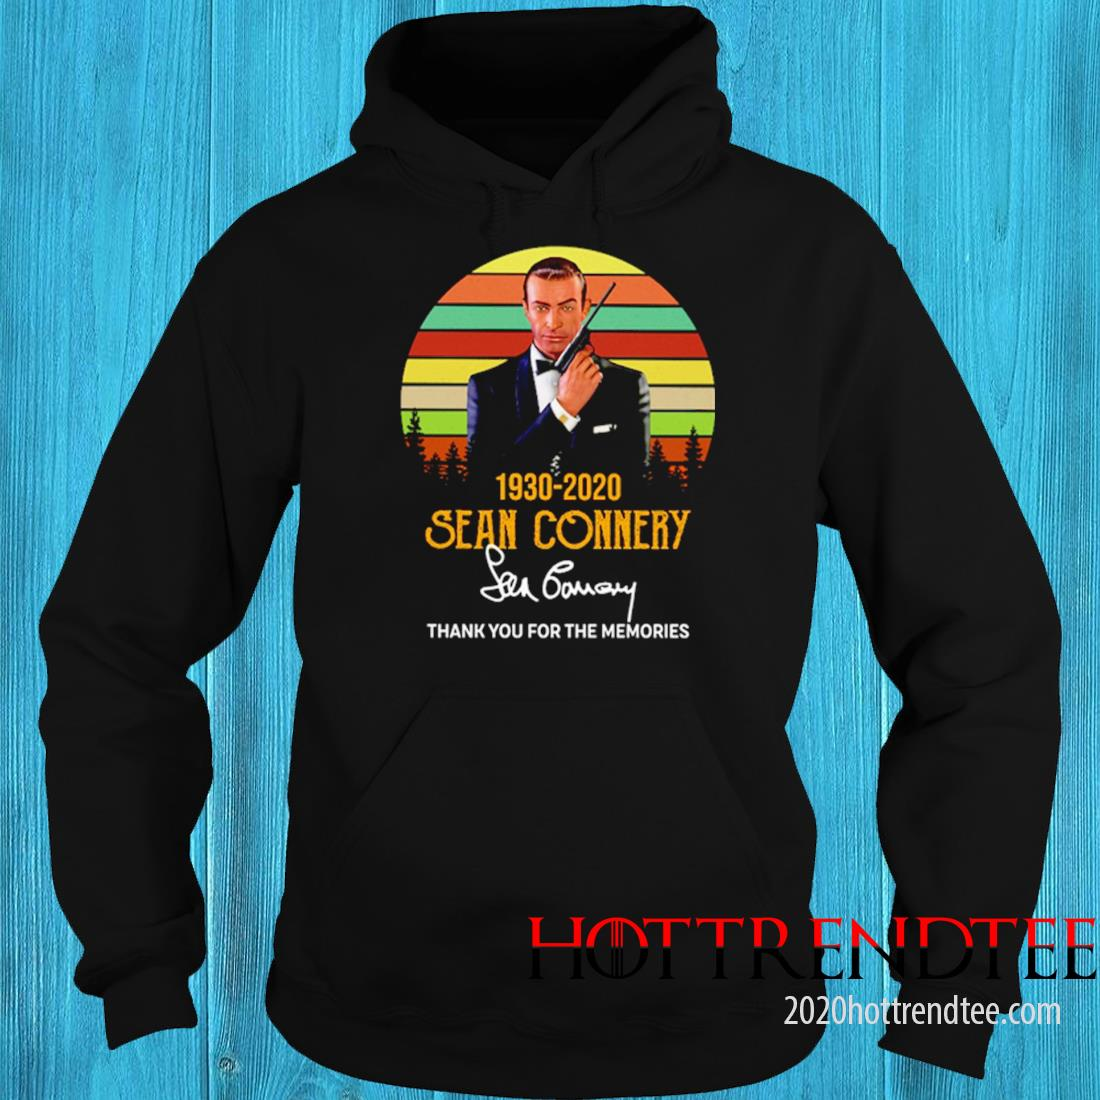 007 Sean Connery 1930 2020 Signatures Thanks For The Memories Vintage Shirt 3